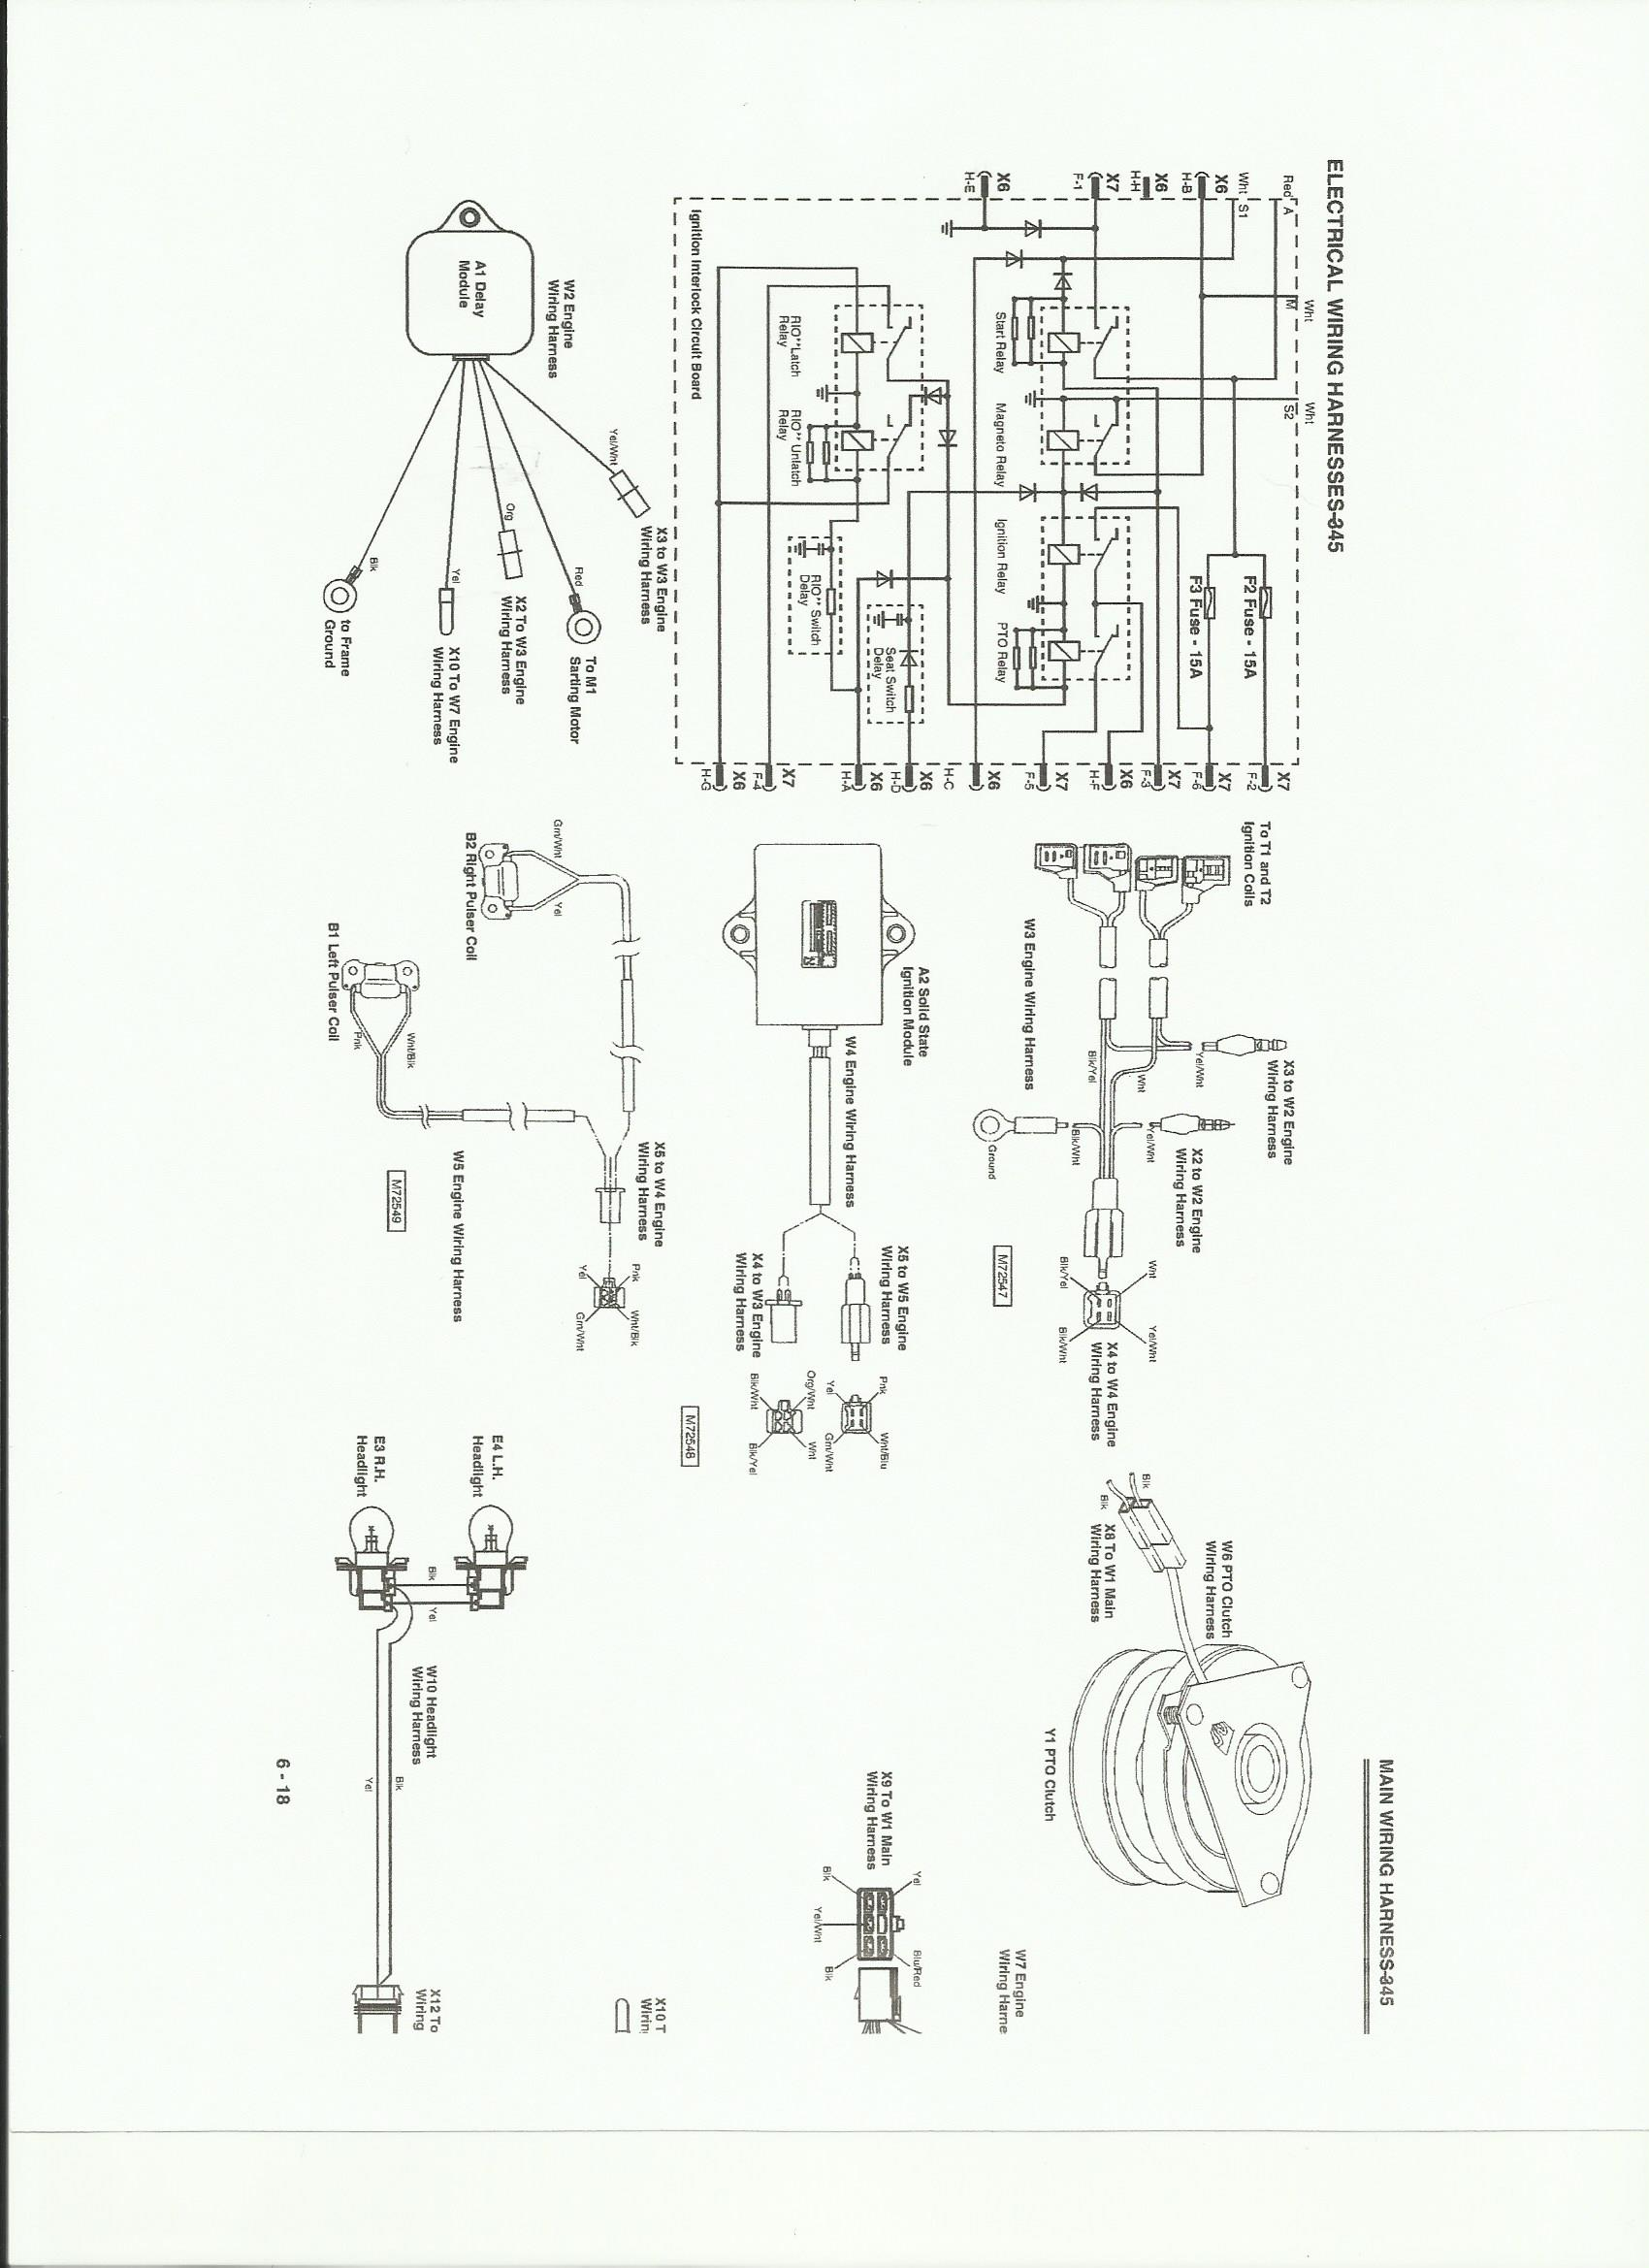 Need a 345 wiring diagram .pdf please | My Tractor Forum John Deere Model B Wiring Diagram on john deere gator 6x4 wiring diagram, john deere 310e wiring diagram, john deere tractor wiring diagram, john deere model b engine diagram, john deere 750 wiring diagram, john deere 102 wiring diagram, john deere 310d wiring diagram, john deere backhoe wiring diagram,